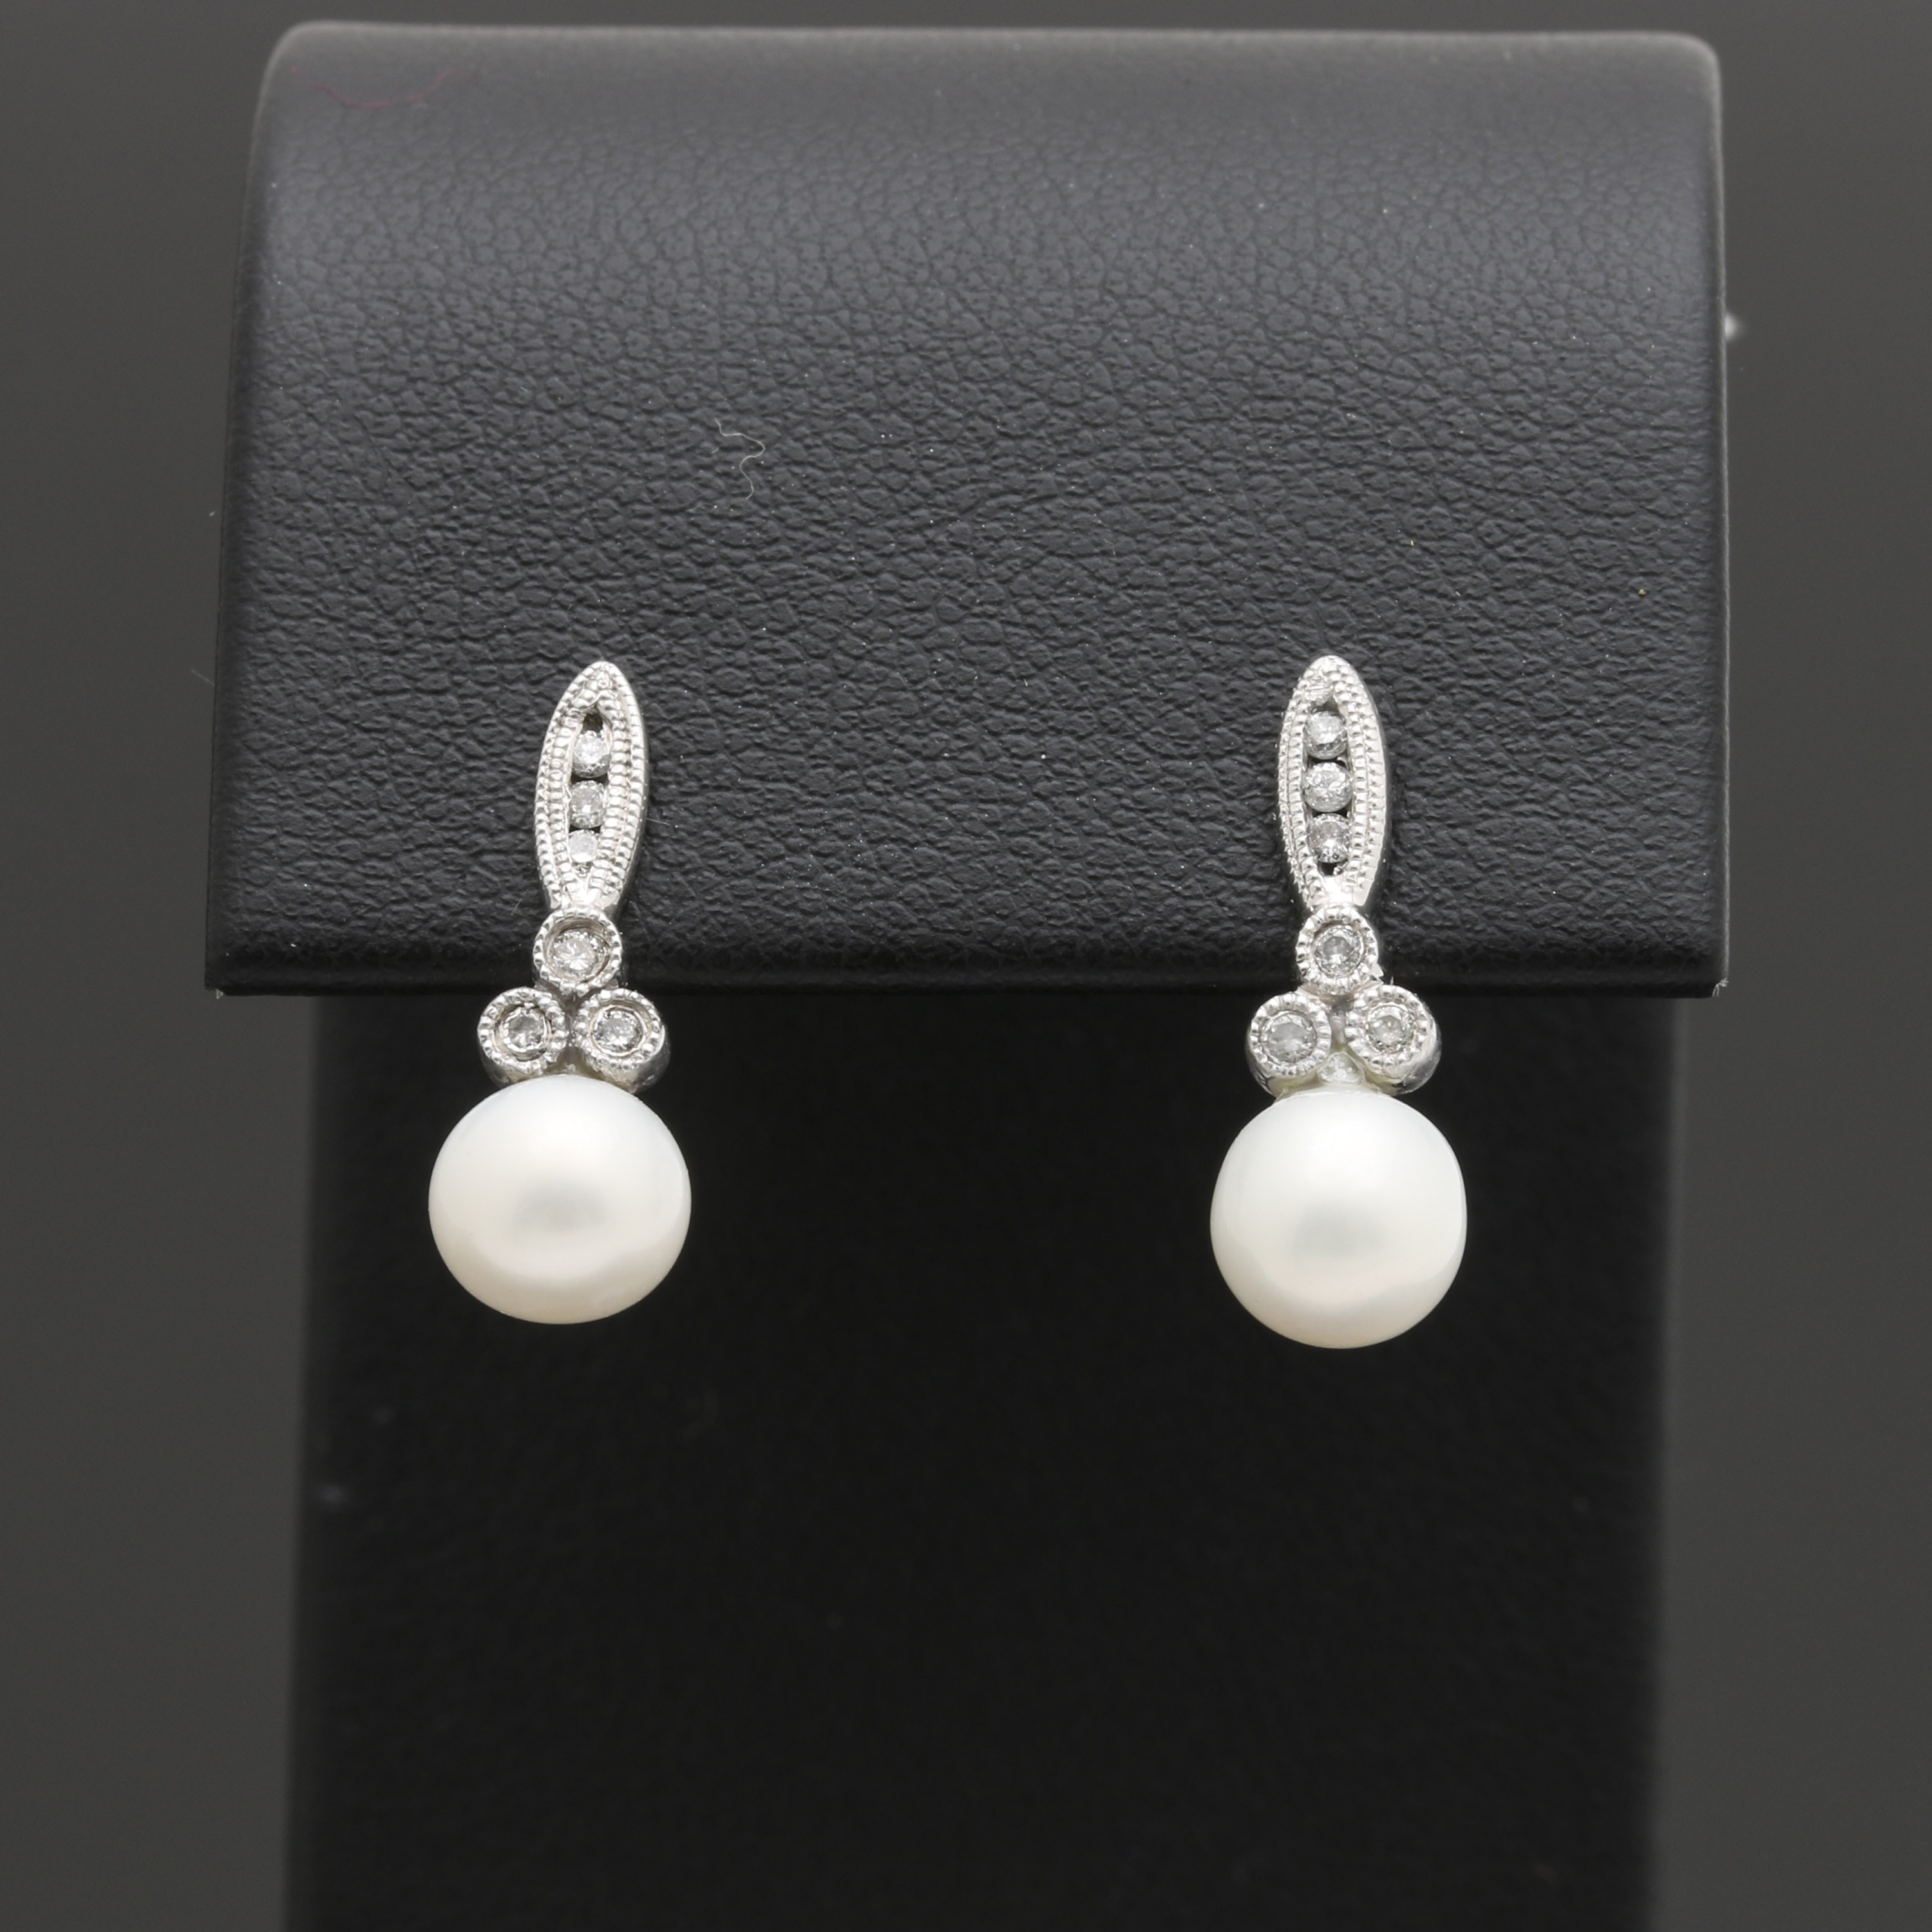 10K White Gold Cultured Pearl and Diamond Earrings